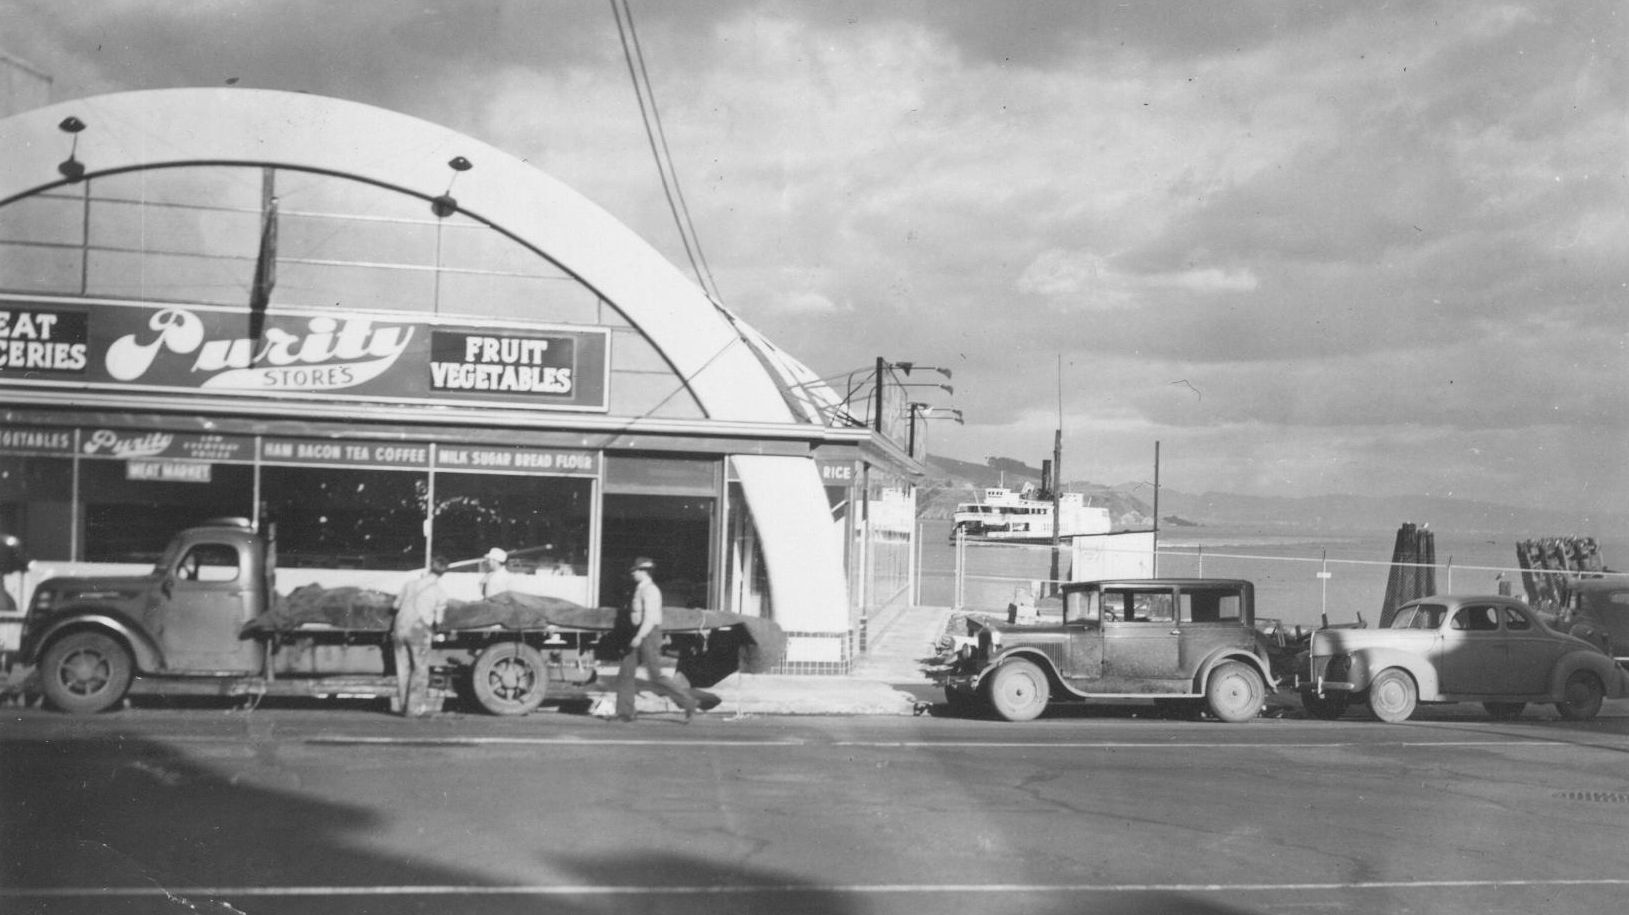 Purity Market in 1941                  Photo courtesy of Sausalito Historical Society